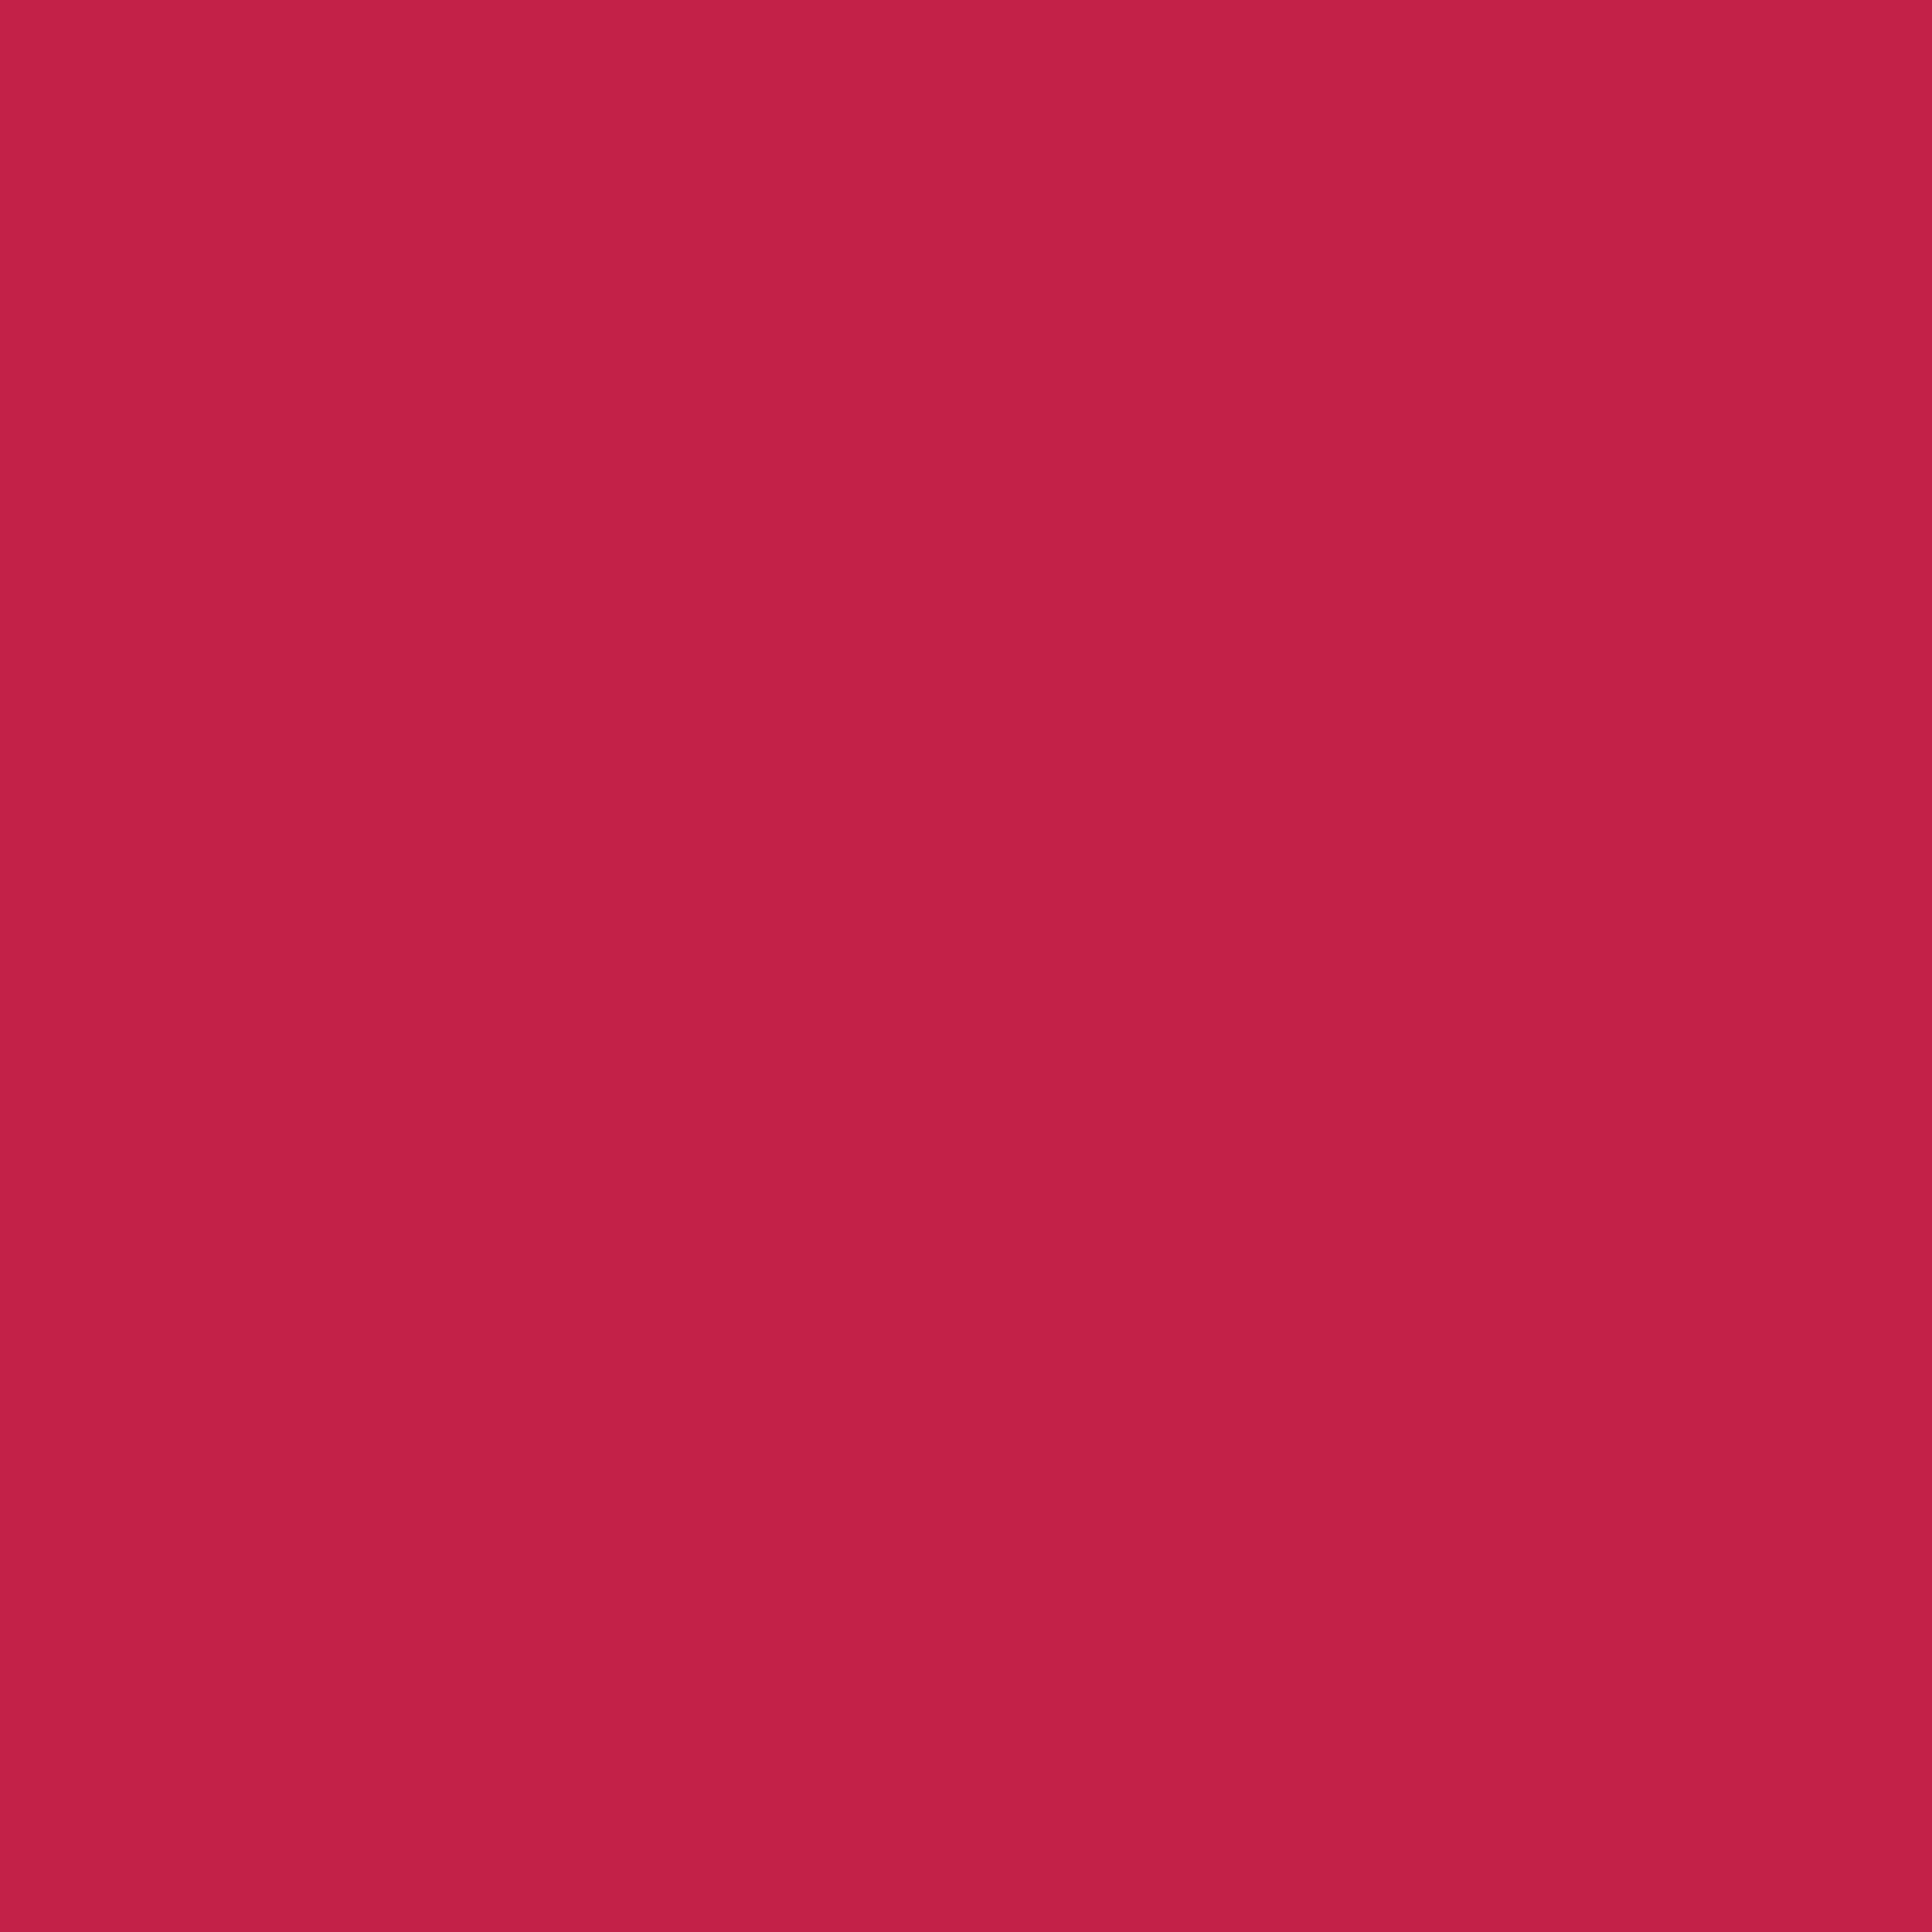 2048x2048 Bright Maroon Solid Color Background